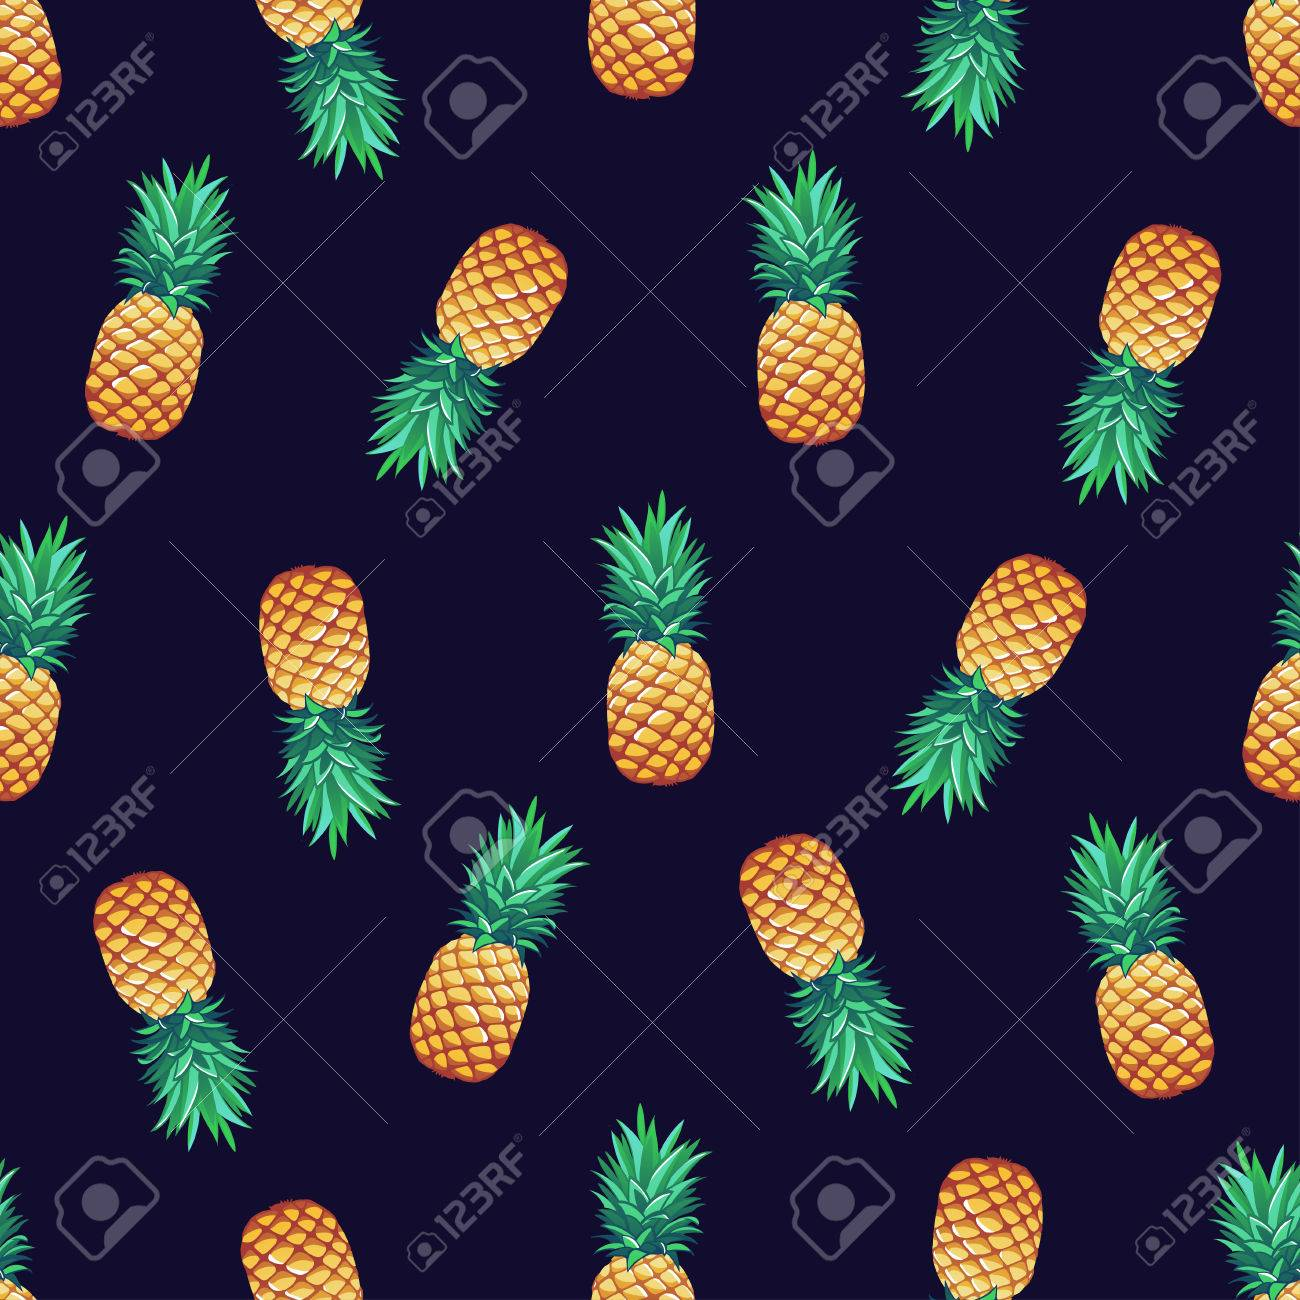 Tropical trendy vector seamless pattern with pineapples. - 50477579